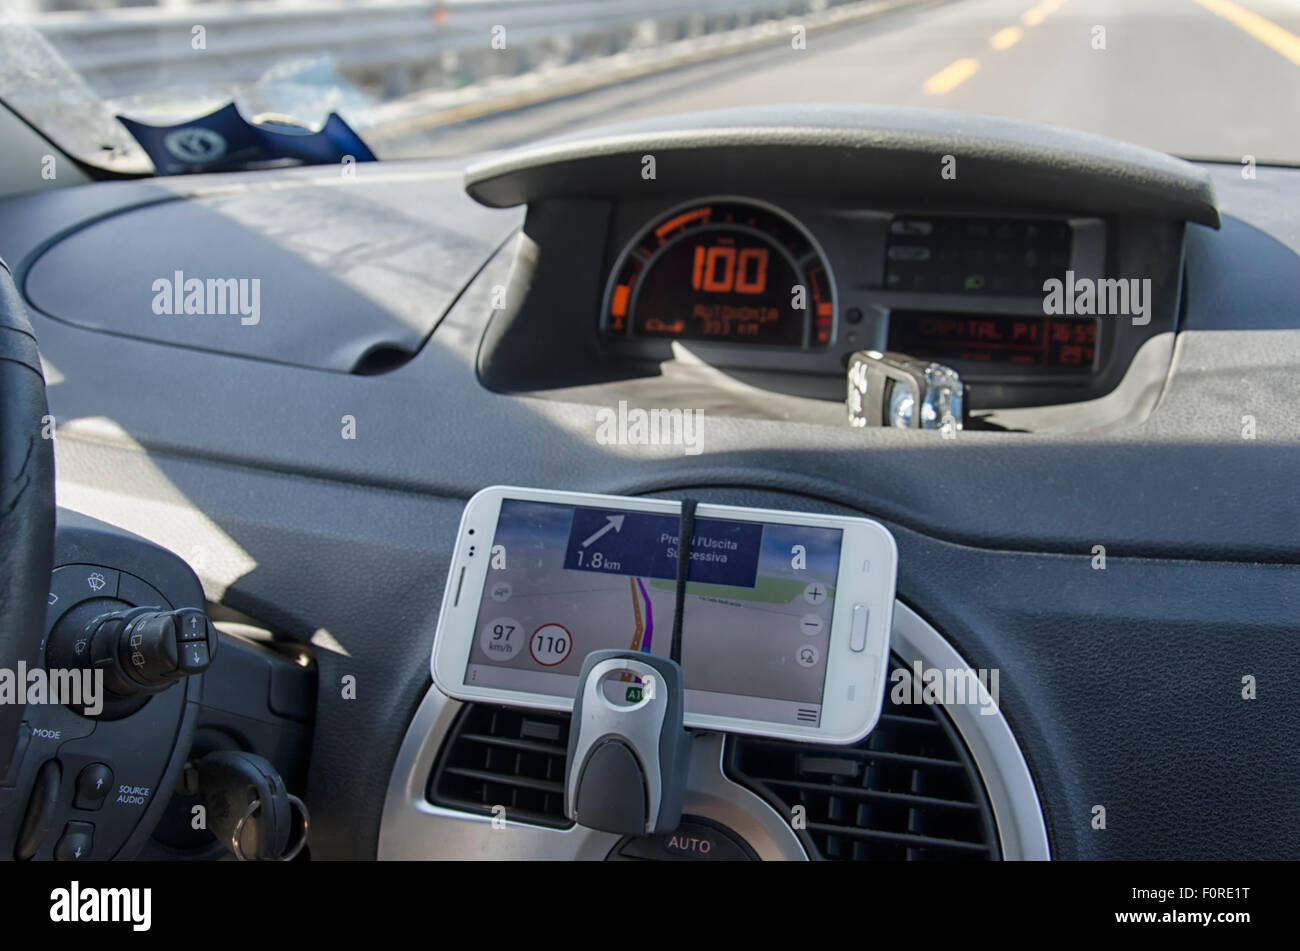 Phone use as a navigation system in the car - Stock Image